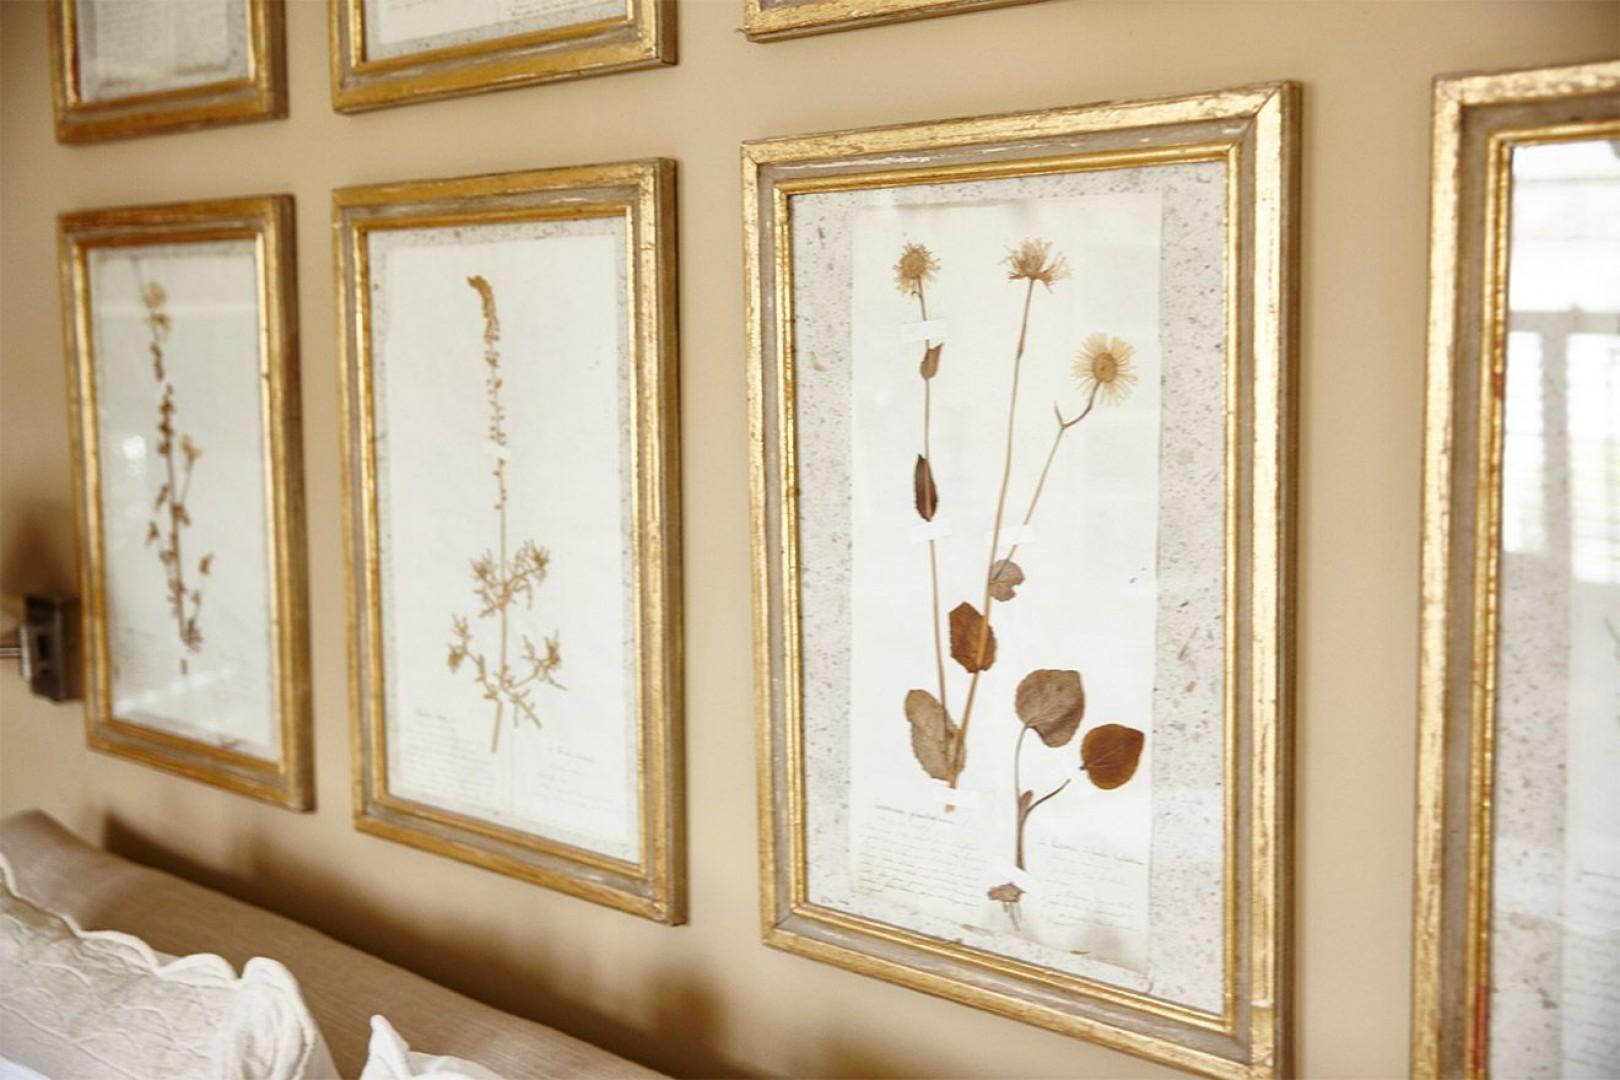 Framed pressed flowers above the bed